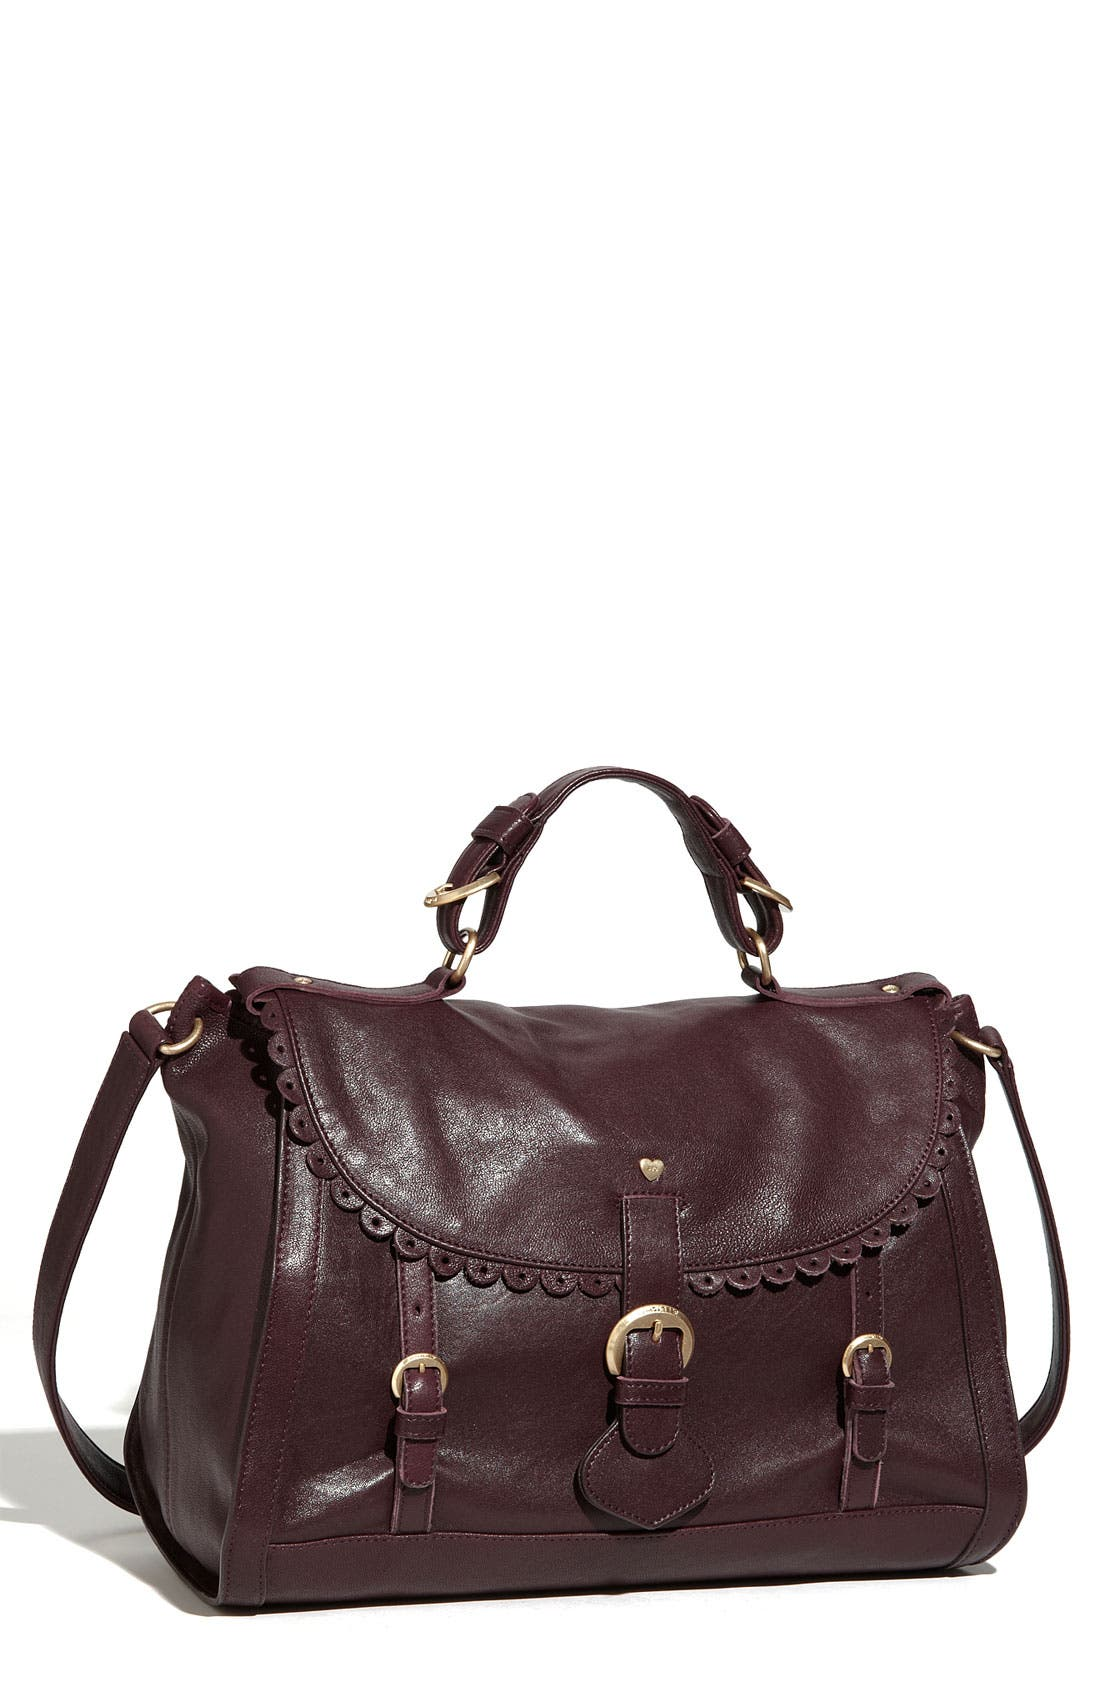 Main Image - See By Chloé 'Poya Vintage - Large' Leather Satchel